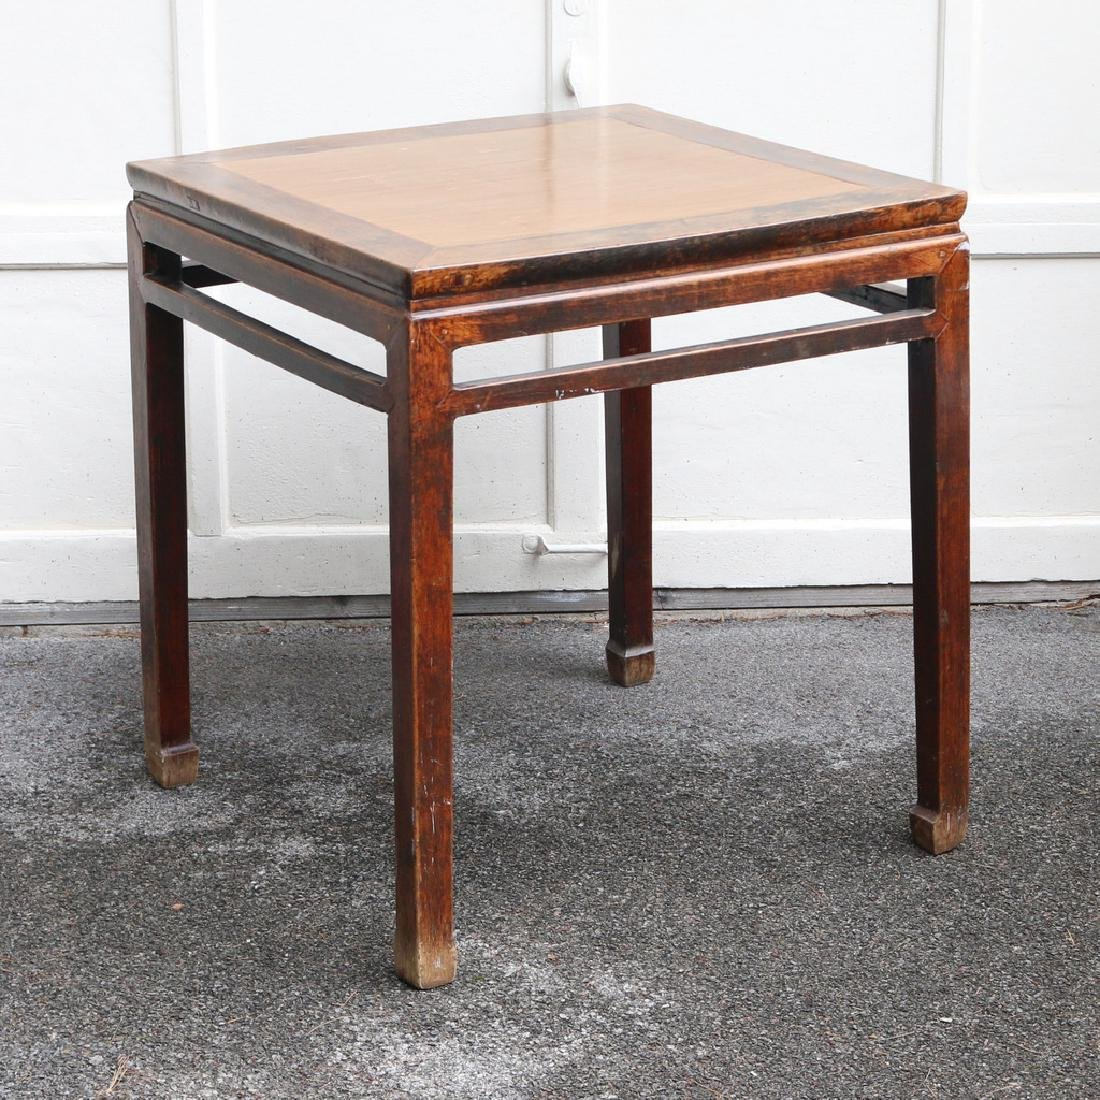 CHINESE SQUARE END TABLE